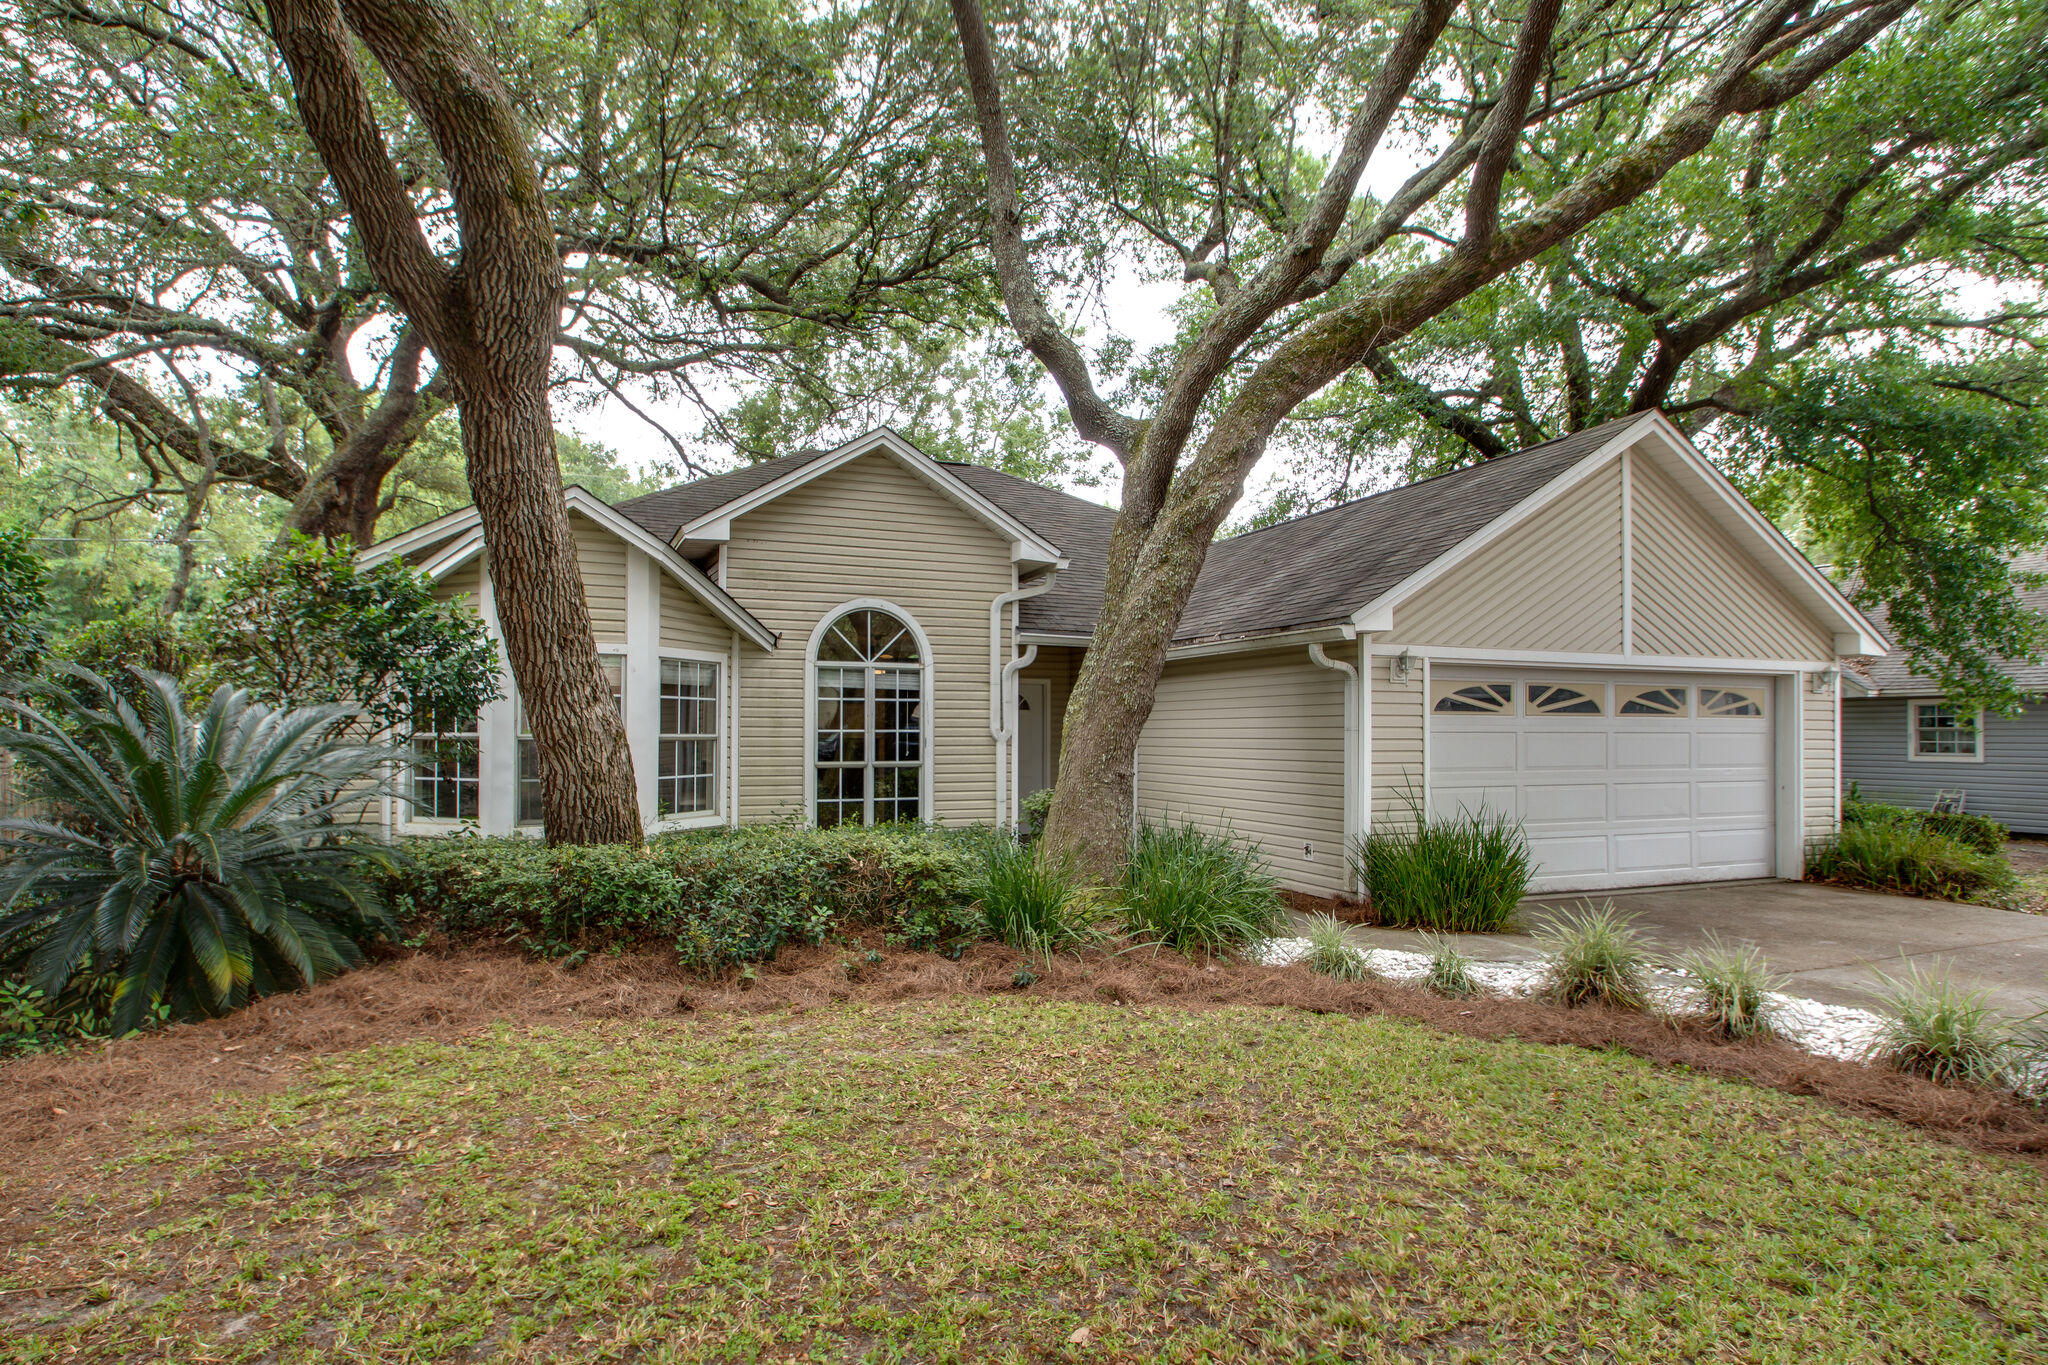 Updated 3 bedroom 2 bath  on a quiet cul-de-sac with an open floor plan, awesome upgraded Kitchen wi